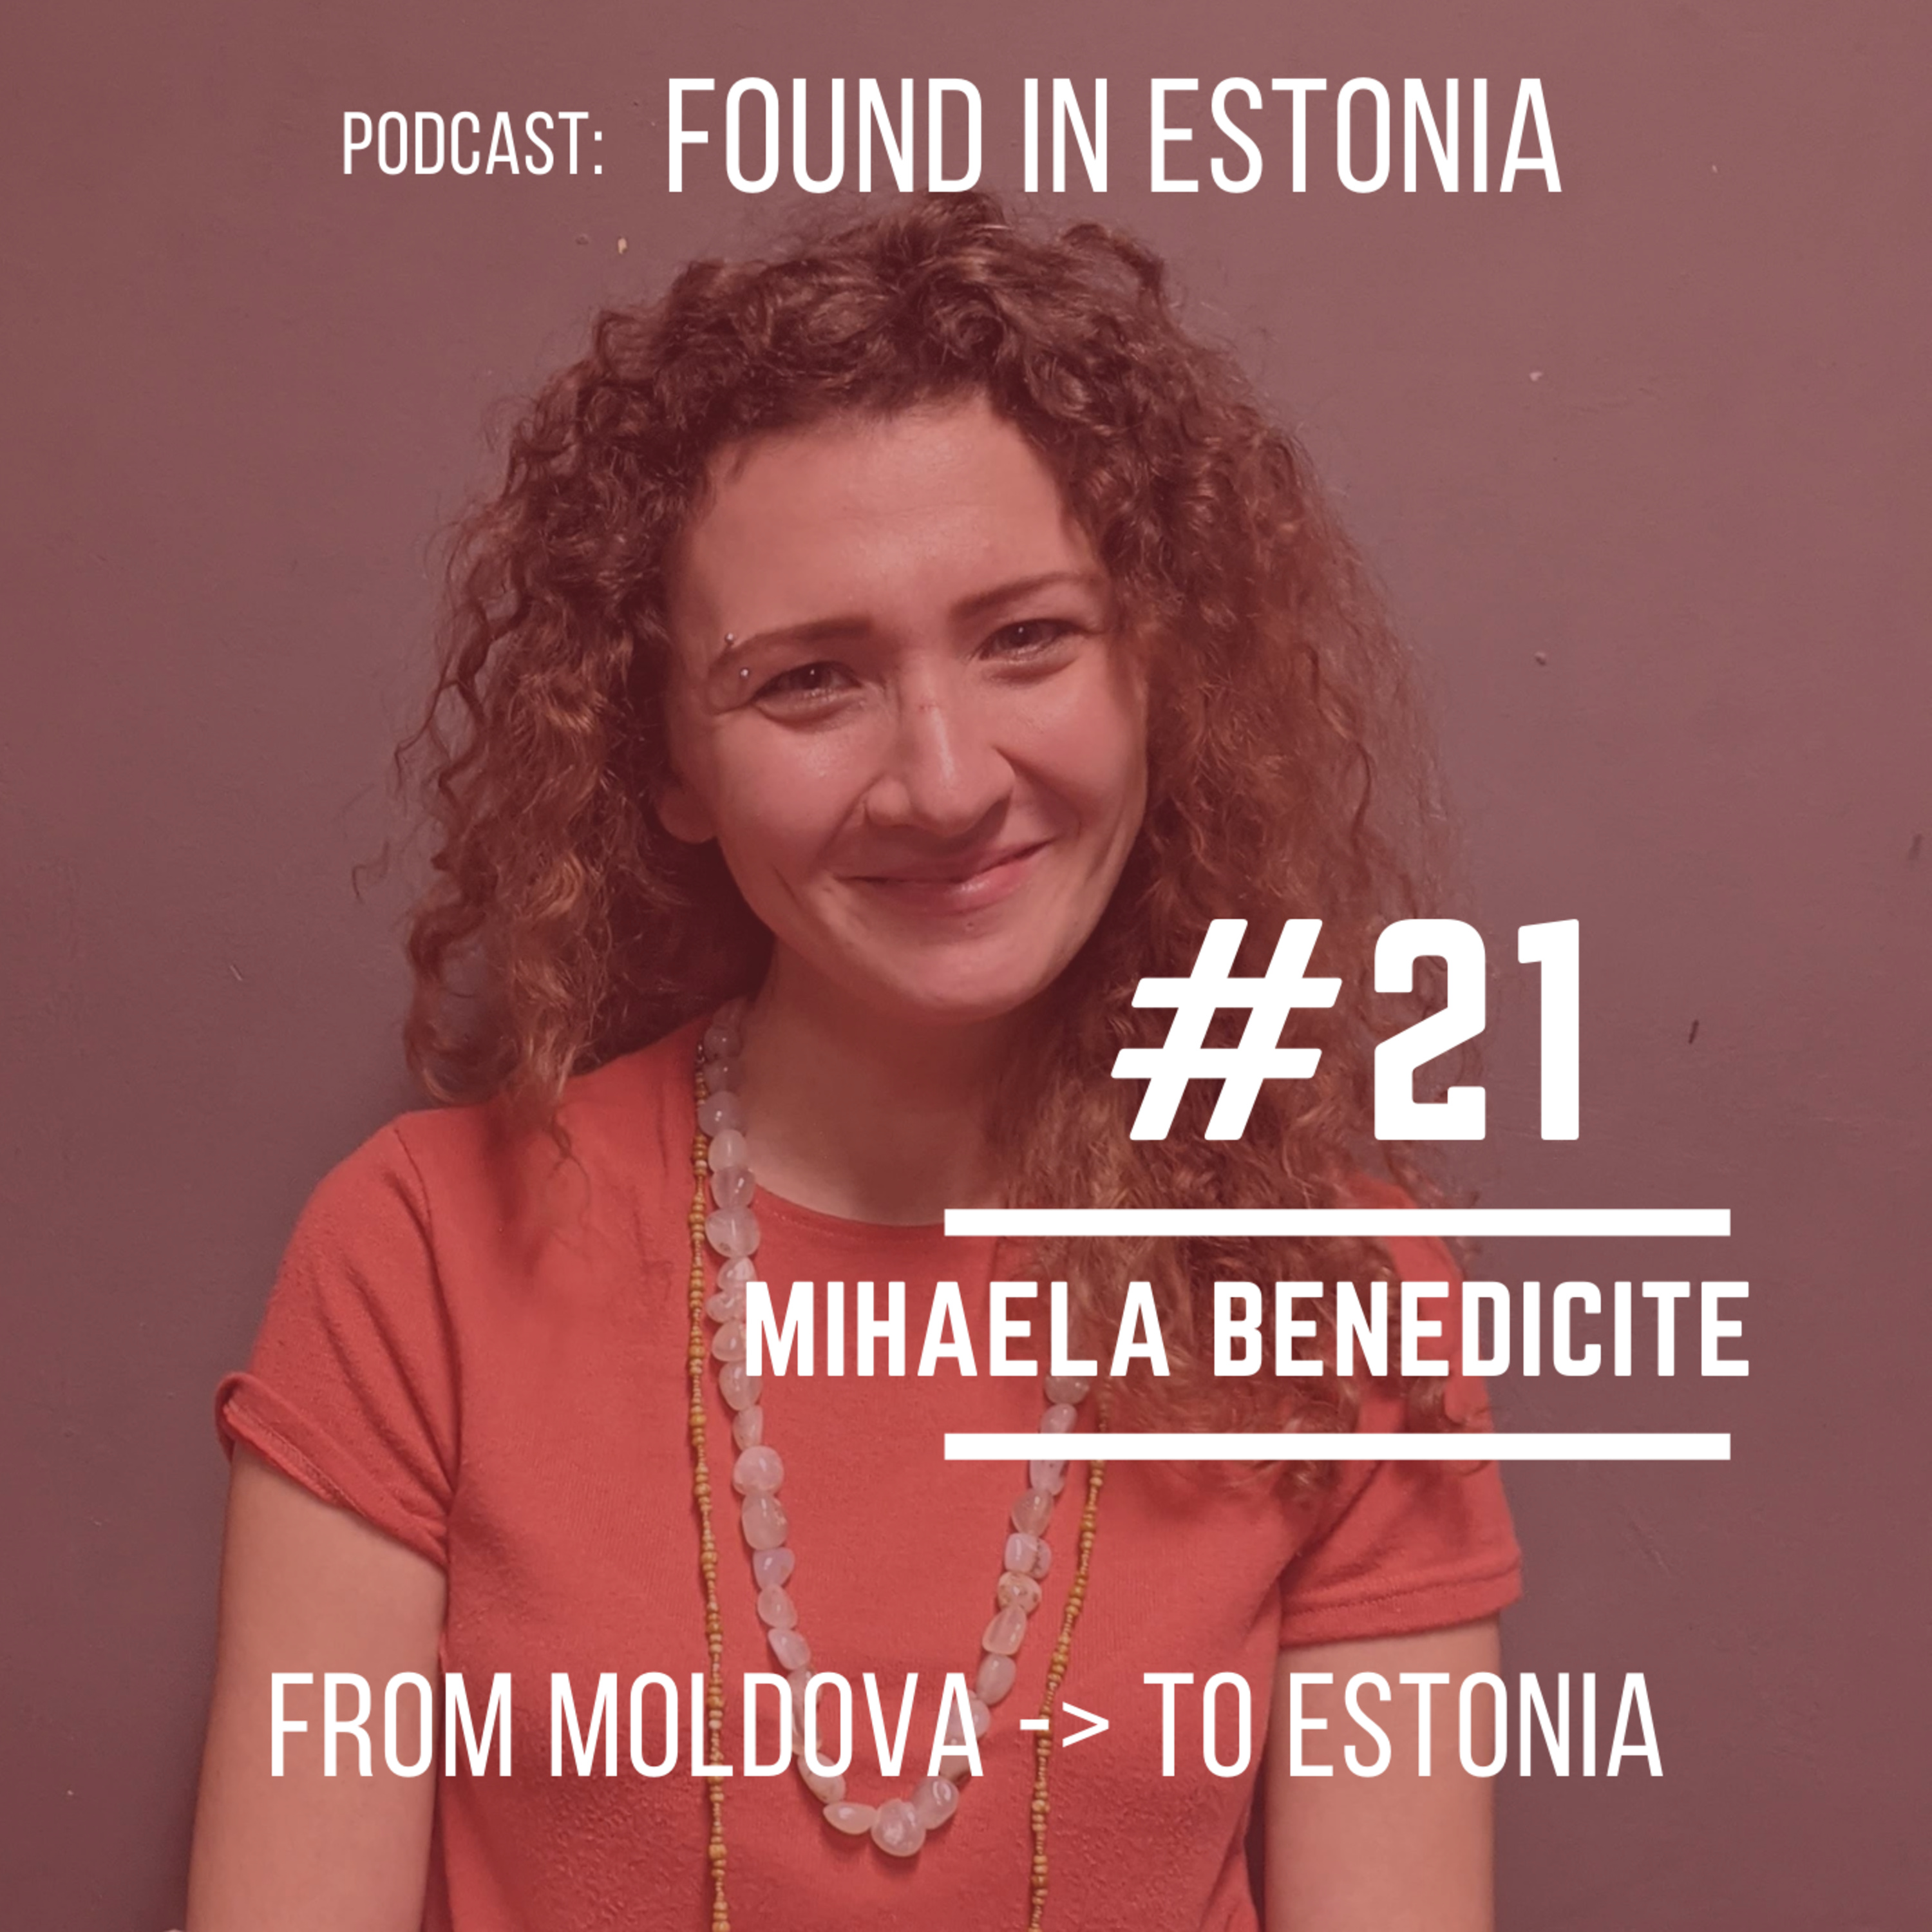 #21 Mihaela Benedicitie from Moldova to Estonia: even if you move to Antarctica, you know you are a Moldovian!